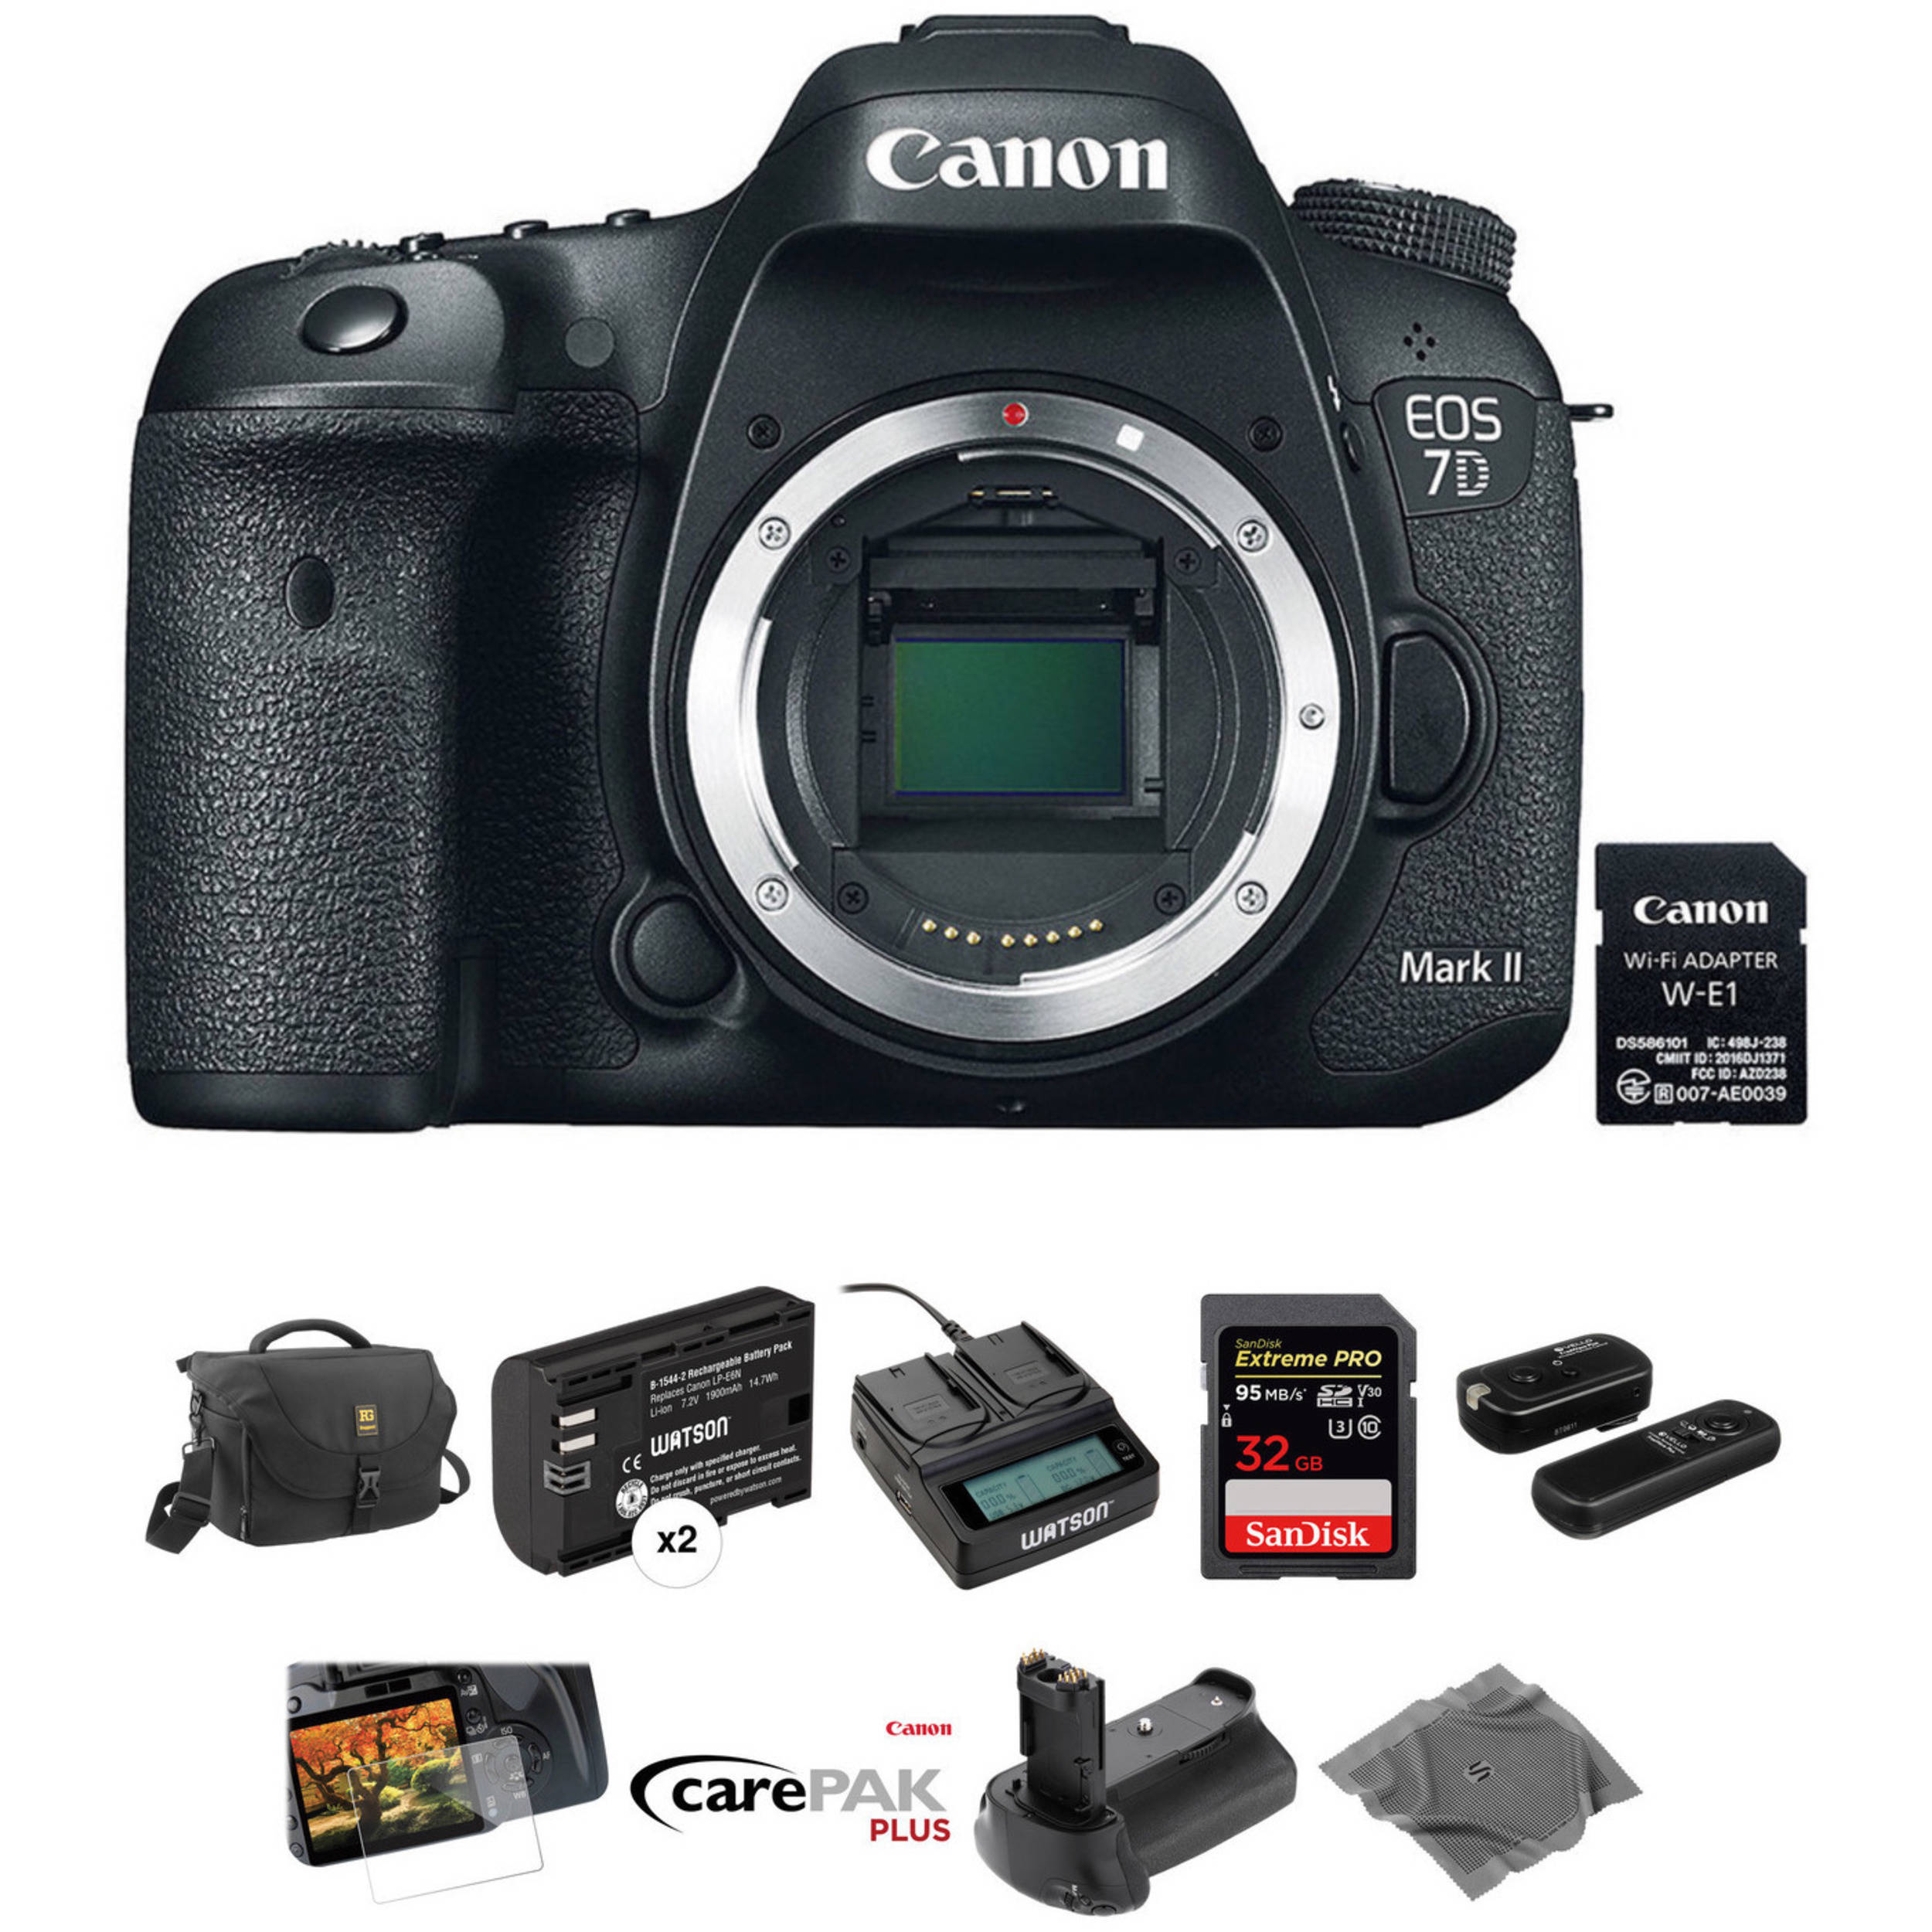 canon eos 7d mark ii dslr camera body with deluxe photo. Black Bedroom Furniture Sets. Home Design Ideas